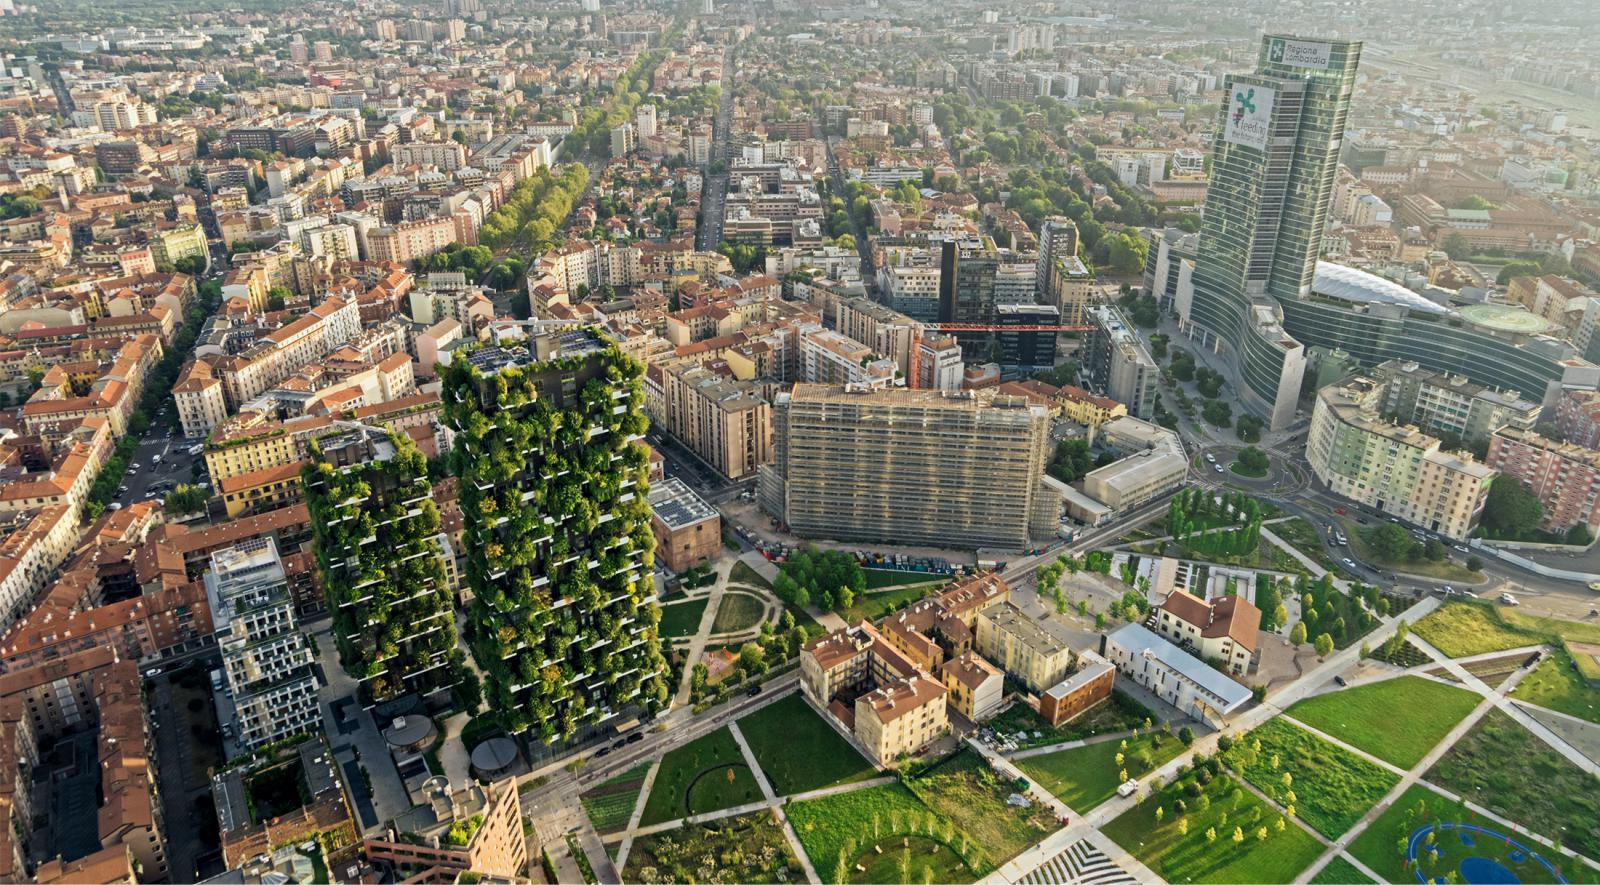 'Cool' roofs, cooler designs as the building industry embraces energy sustainability